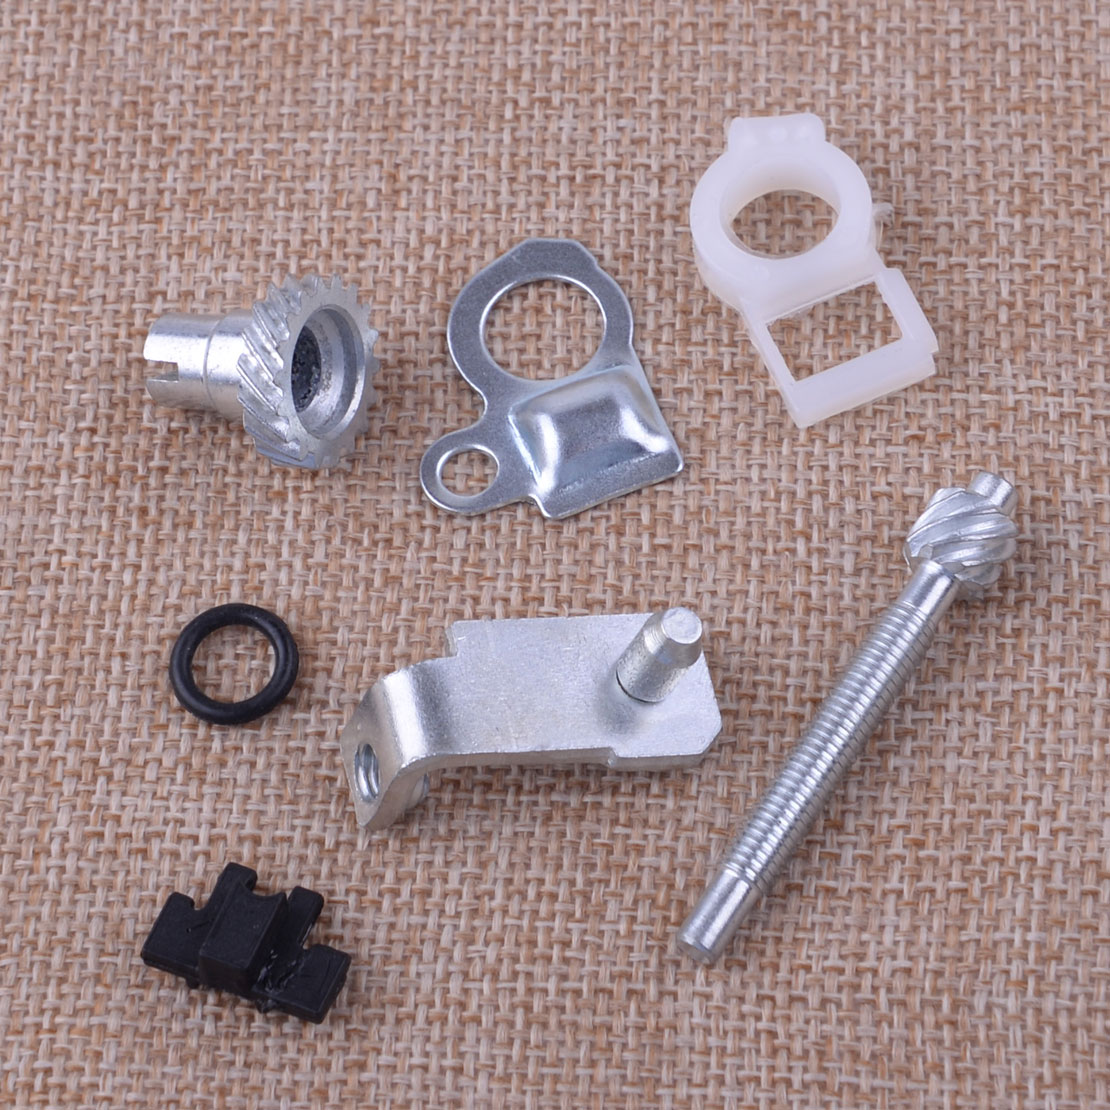 LEATOSK 7pcs/kit Chain Adjuster Tensioner Screw Fit For Stihl 044 046 064 066 MS440 MS460 MS640 MS660